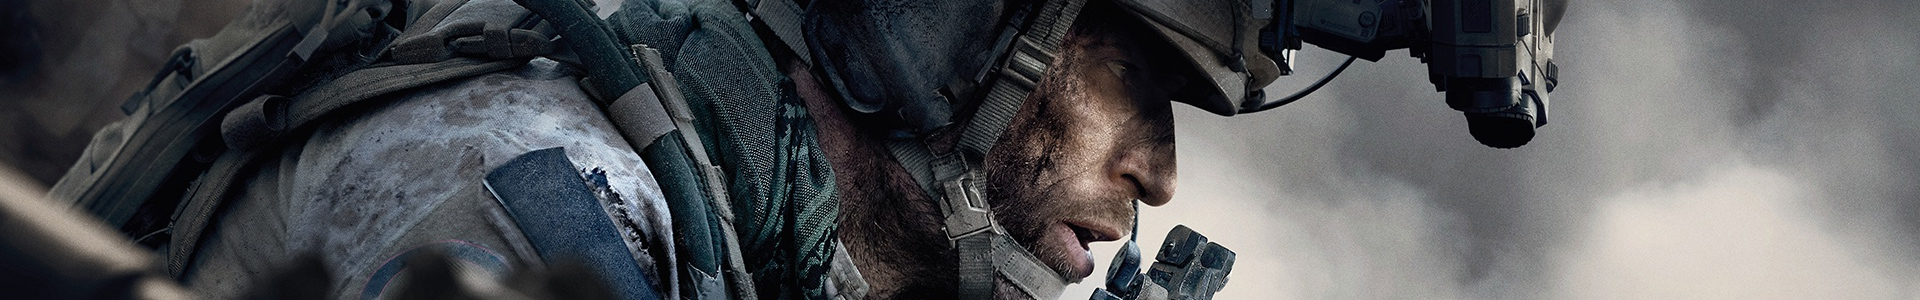 Banner media of Call of Duty: Modern Warfare video game.